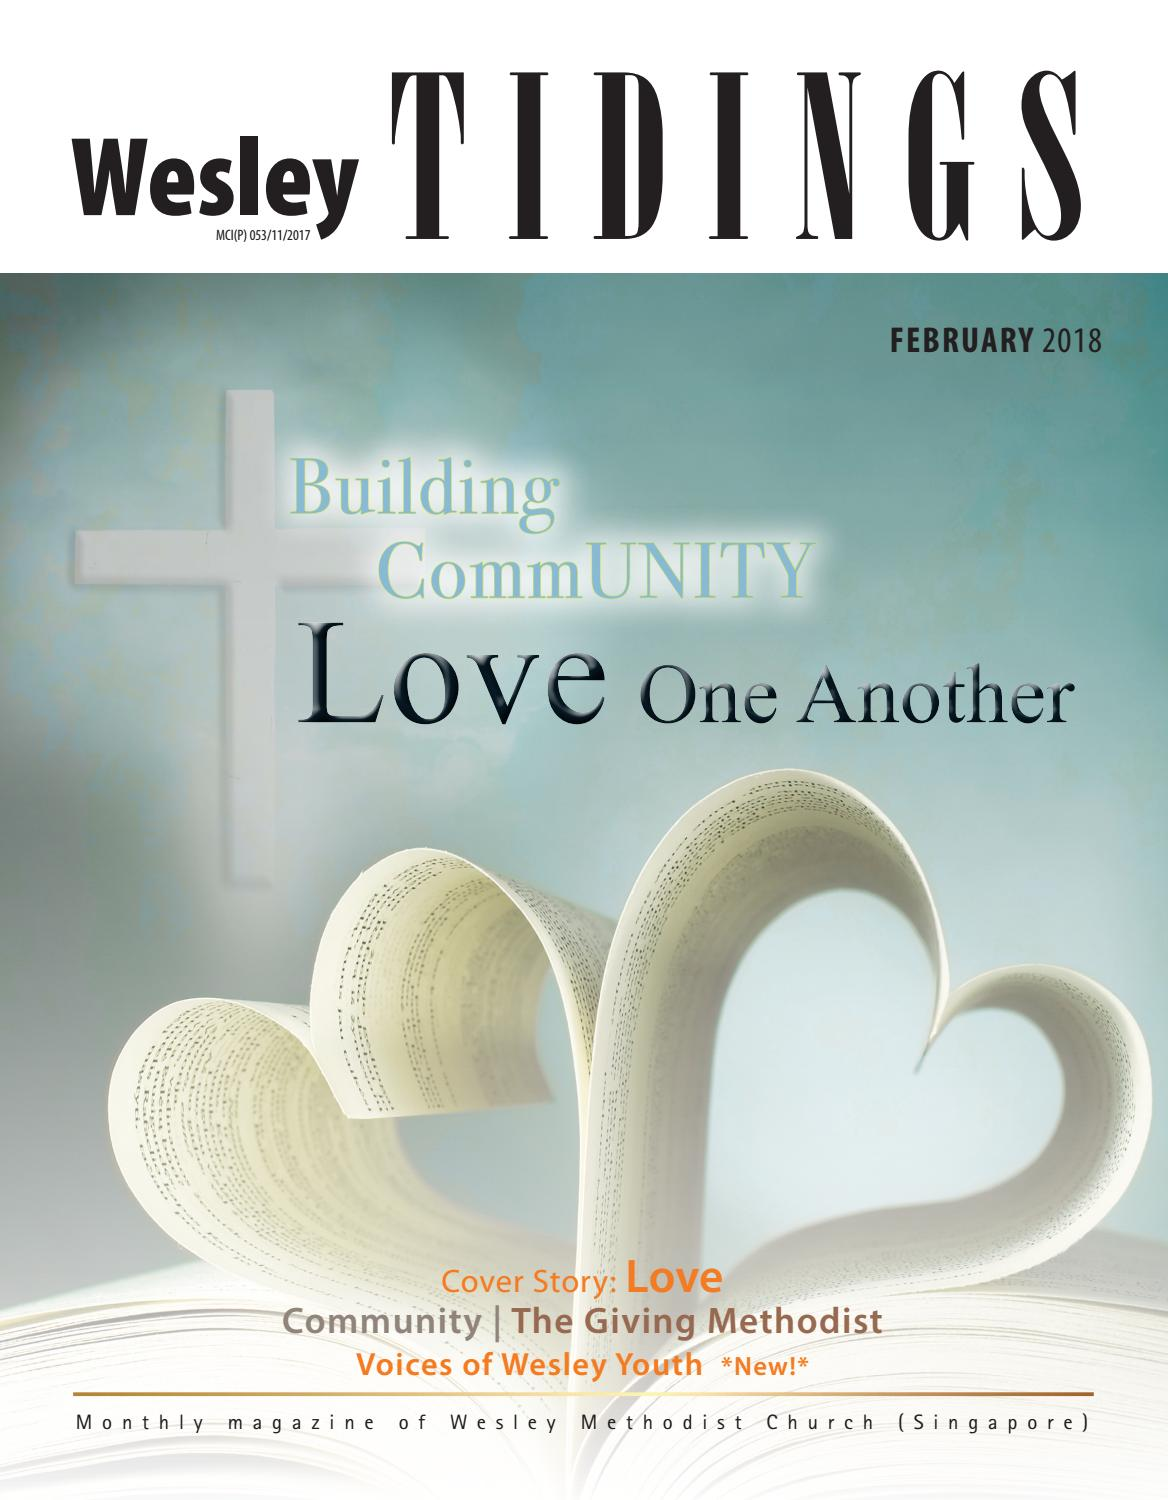 Lent Community Calendar Readings For February 2020 & March 2020 Methodist Wesley Tidings Newsletter February 2018 by Wesley Methodist Church